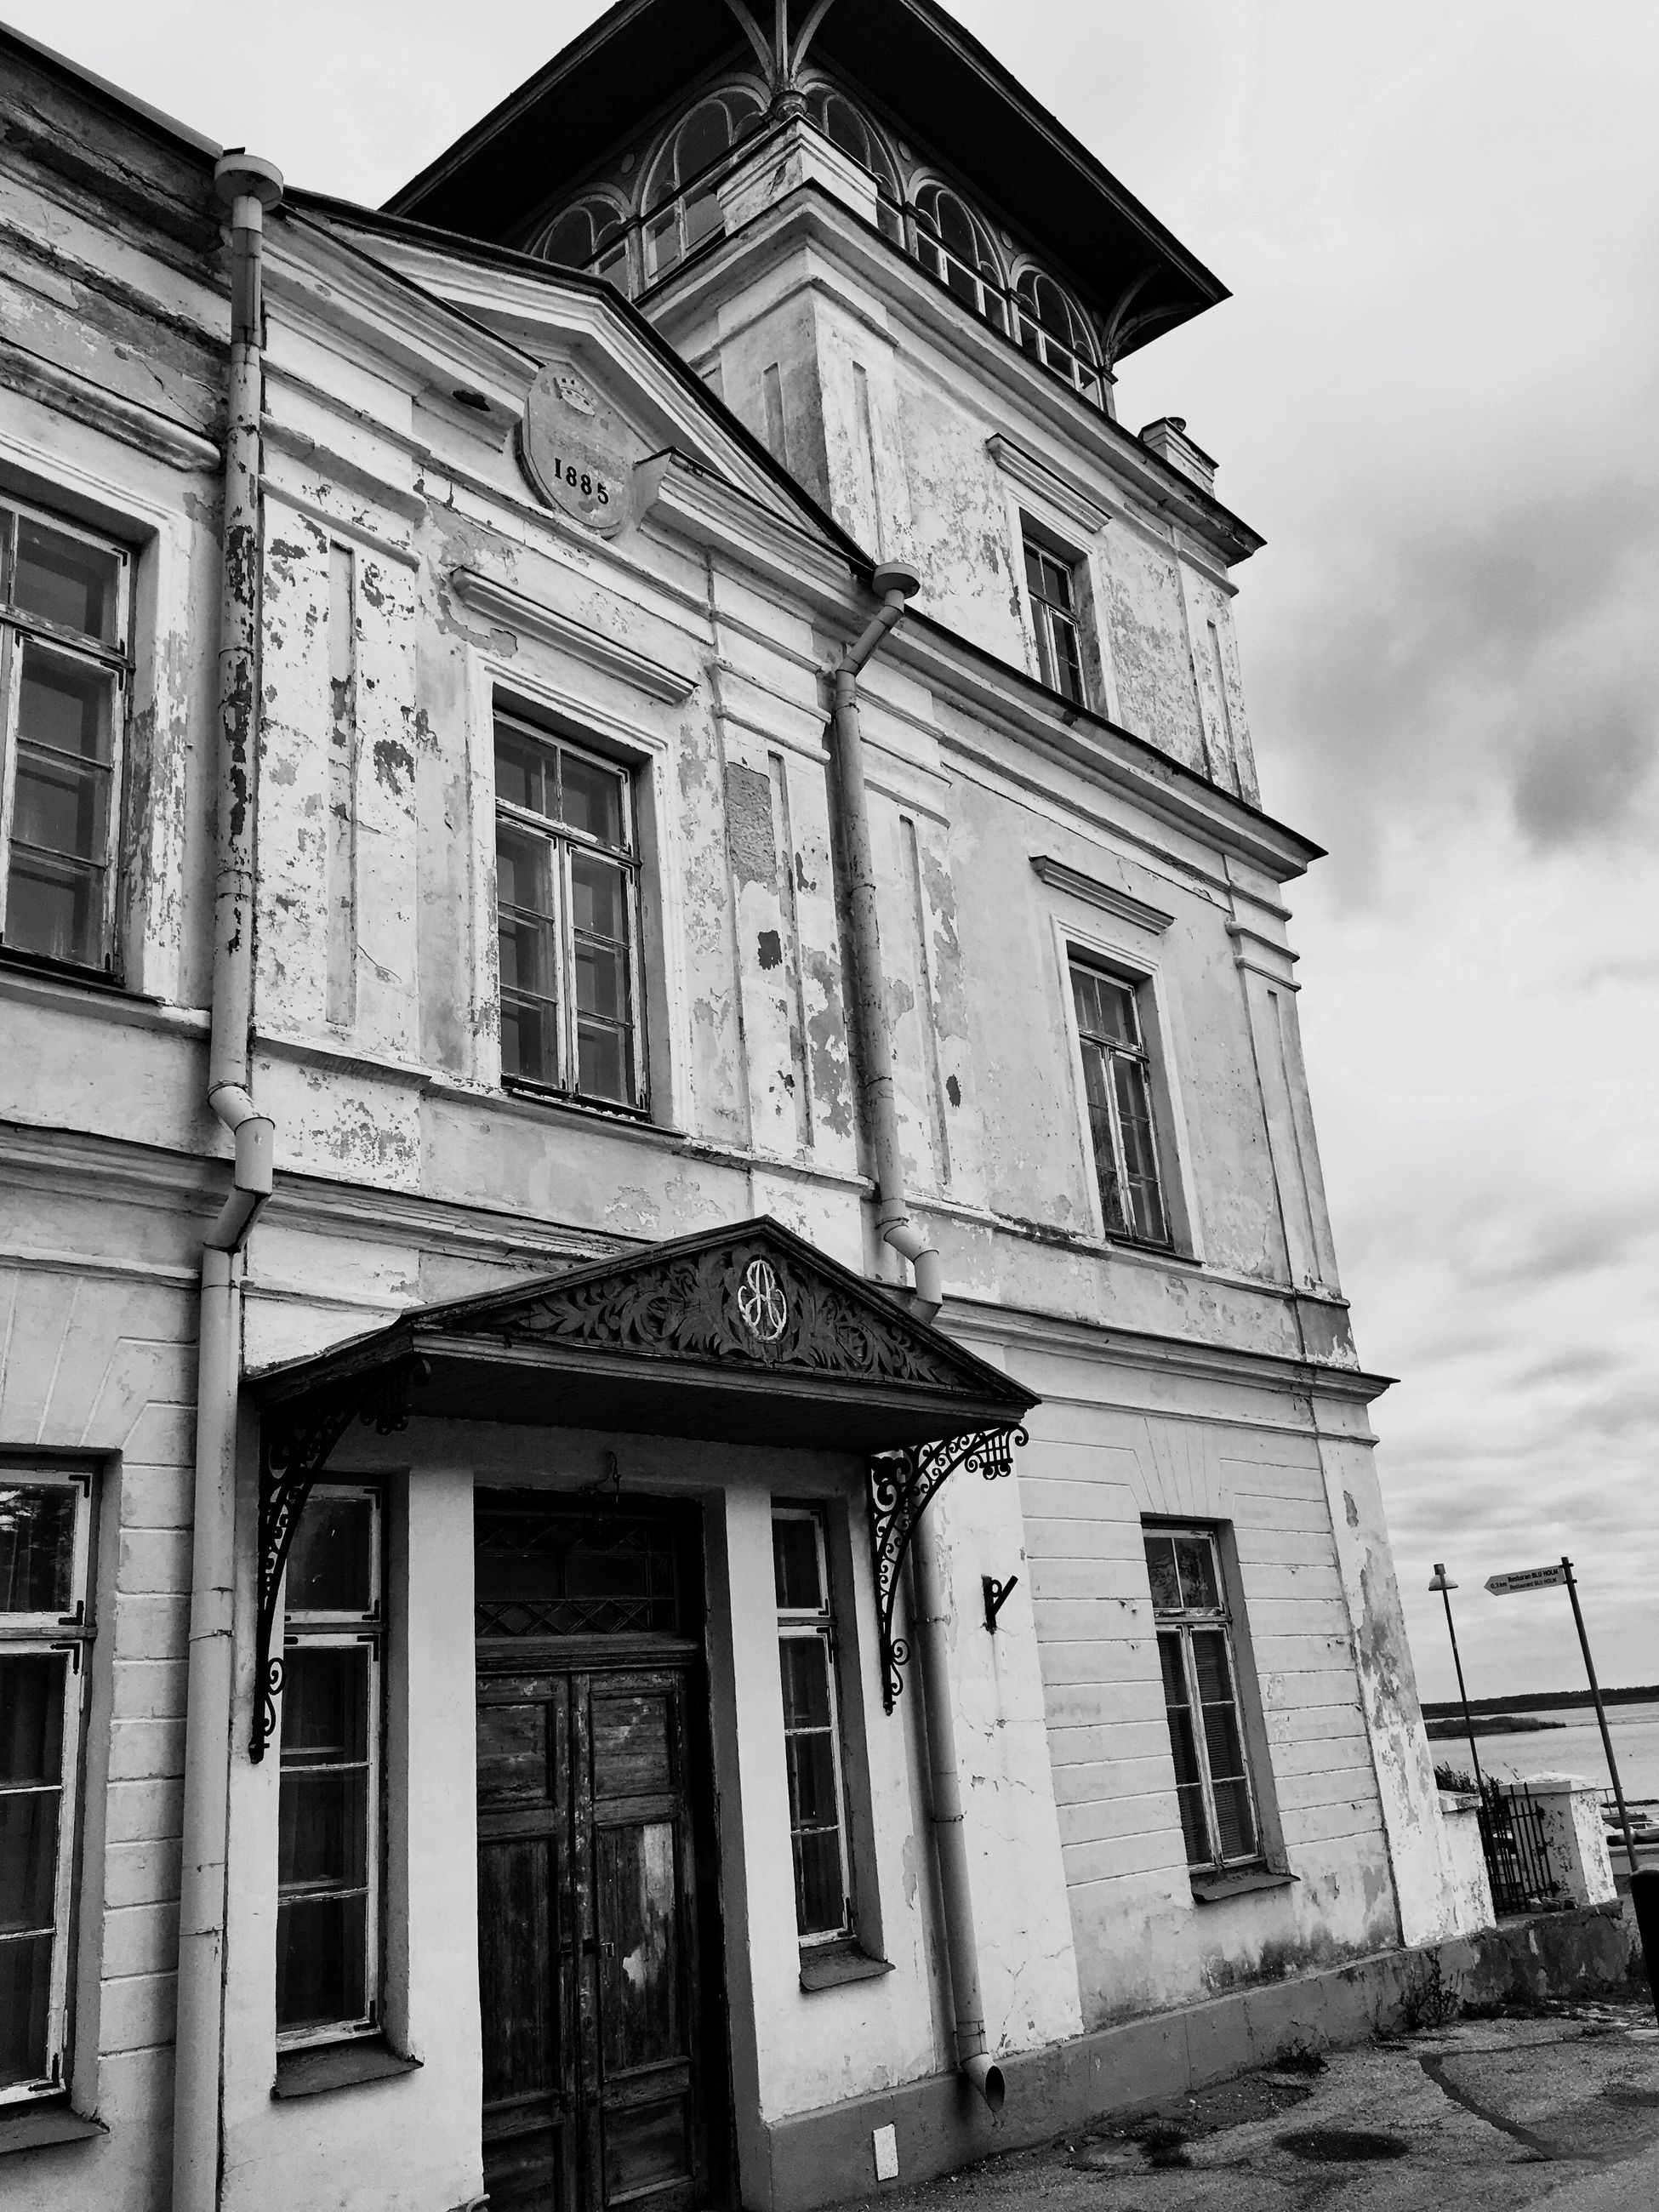 building exterior, architecture, built structure, window, outdoors, low angle view, no people, facade, day, sky, clock, pediment